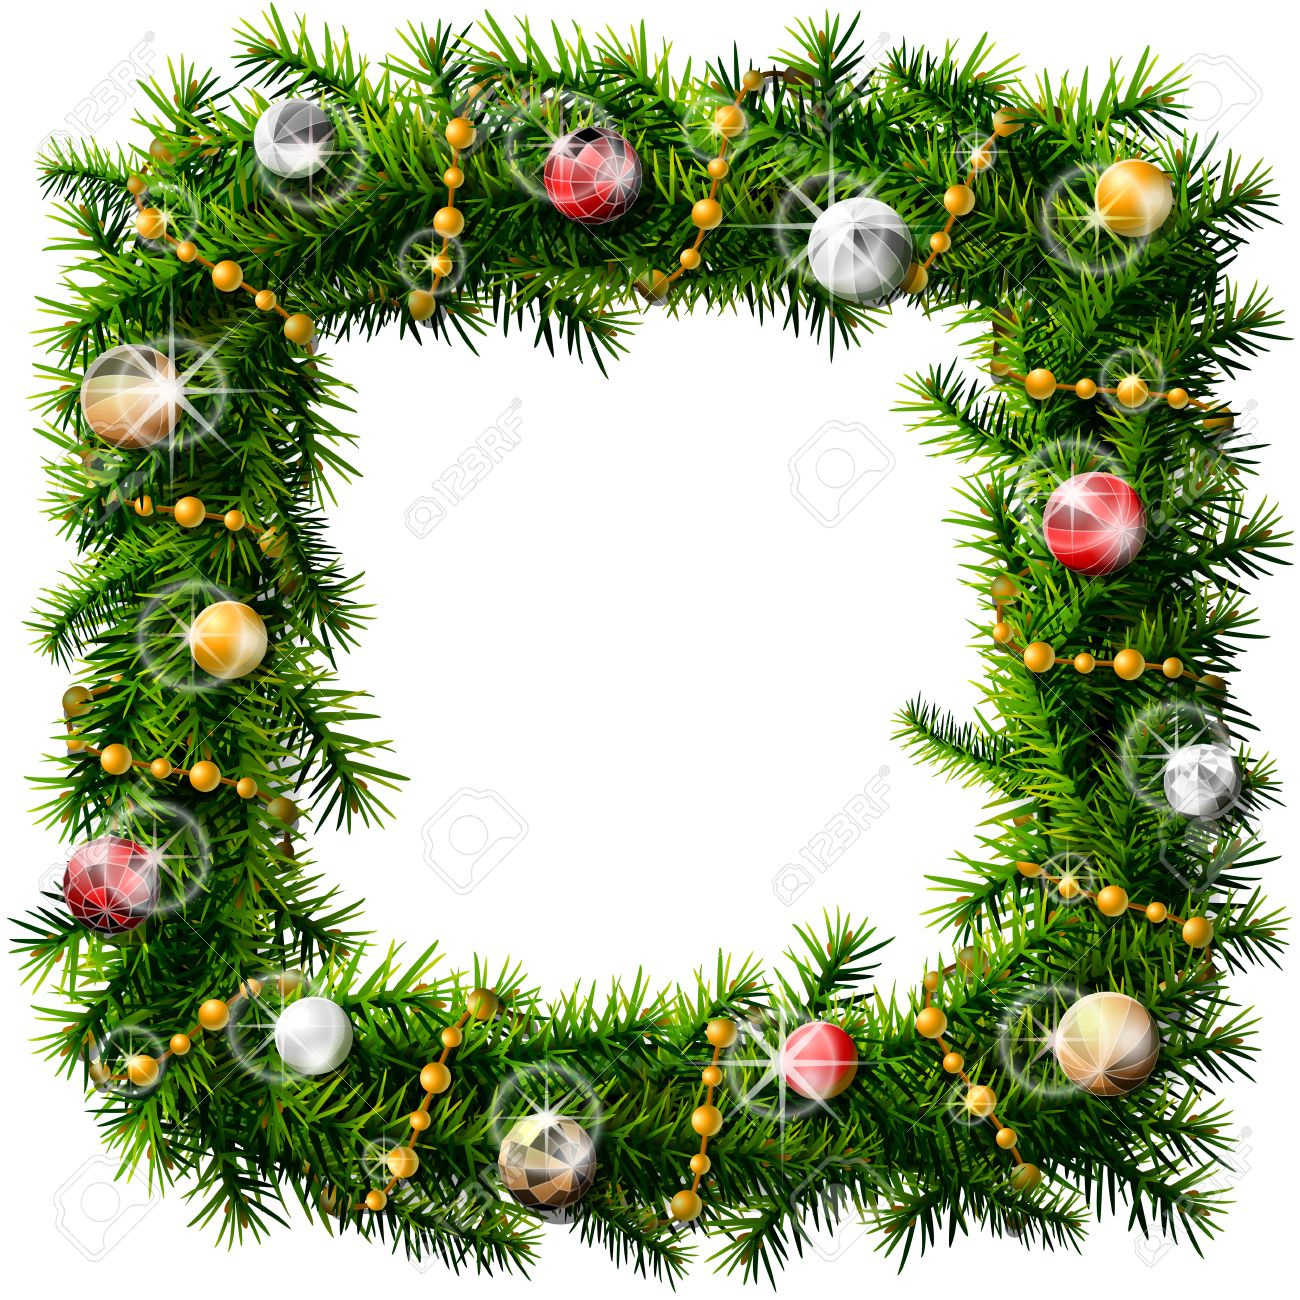 Pine Branches For Decoration Christmas Square Wreath With Decorative Beads And Balls Decorated